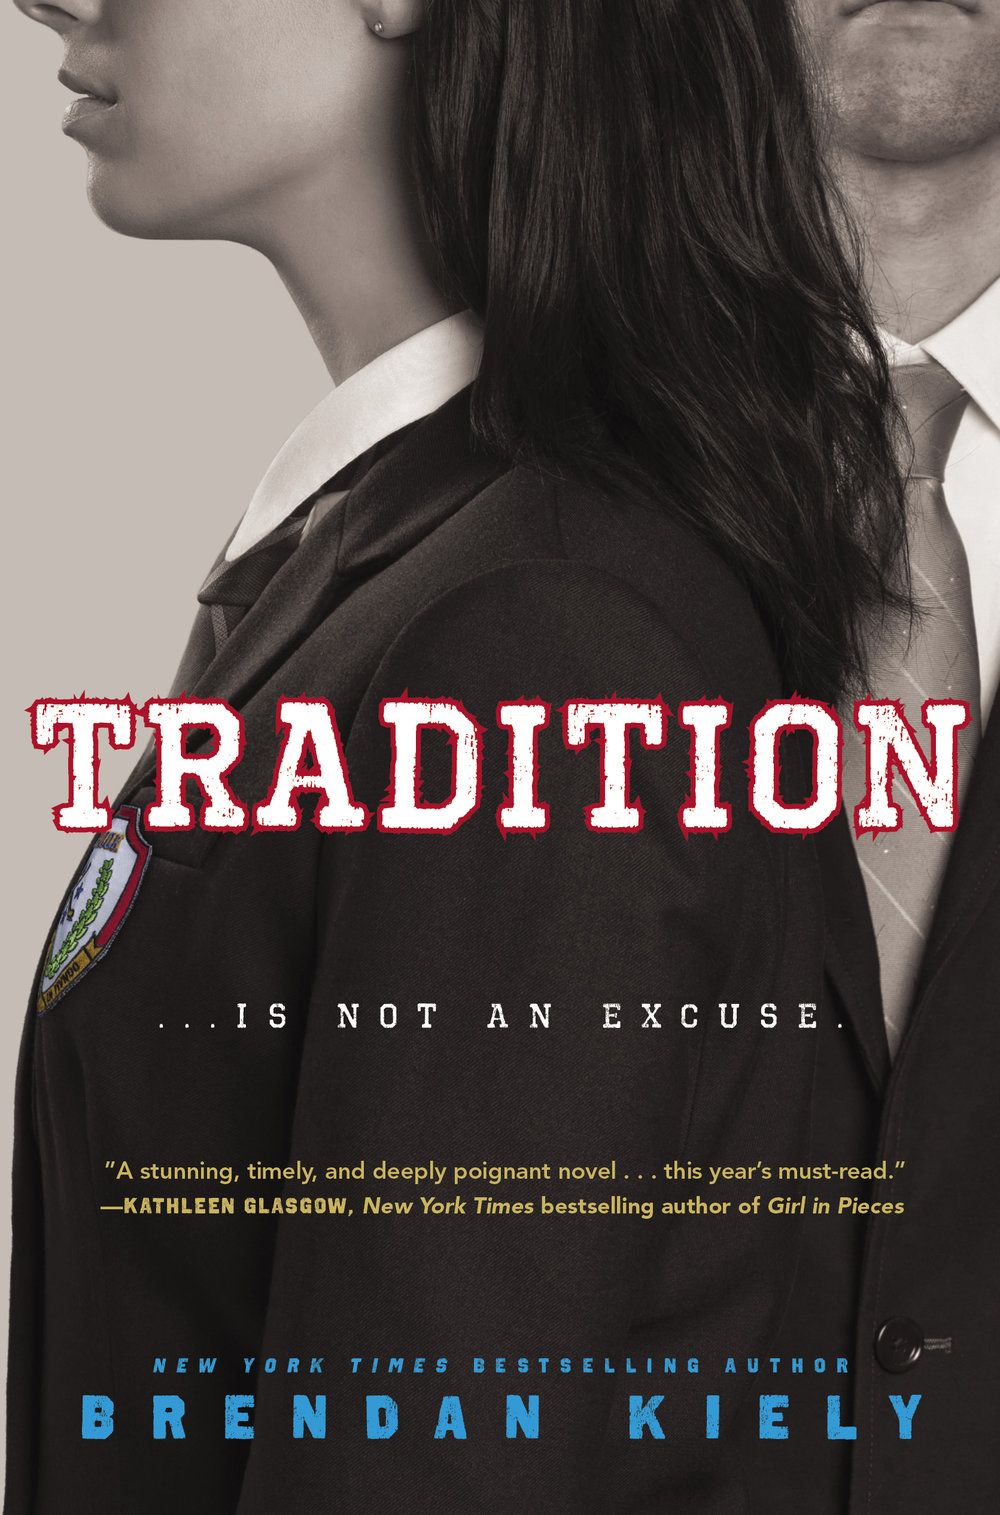 Tradition by Brendan Kiely Simon & Schuster, 2018